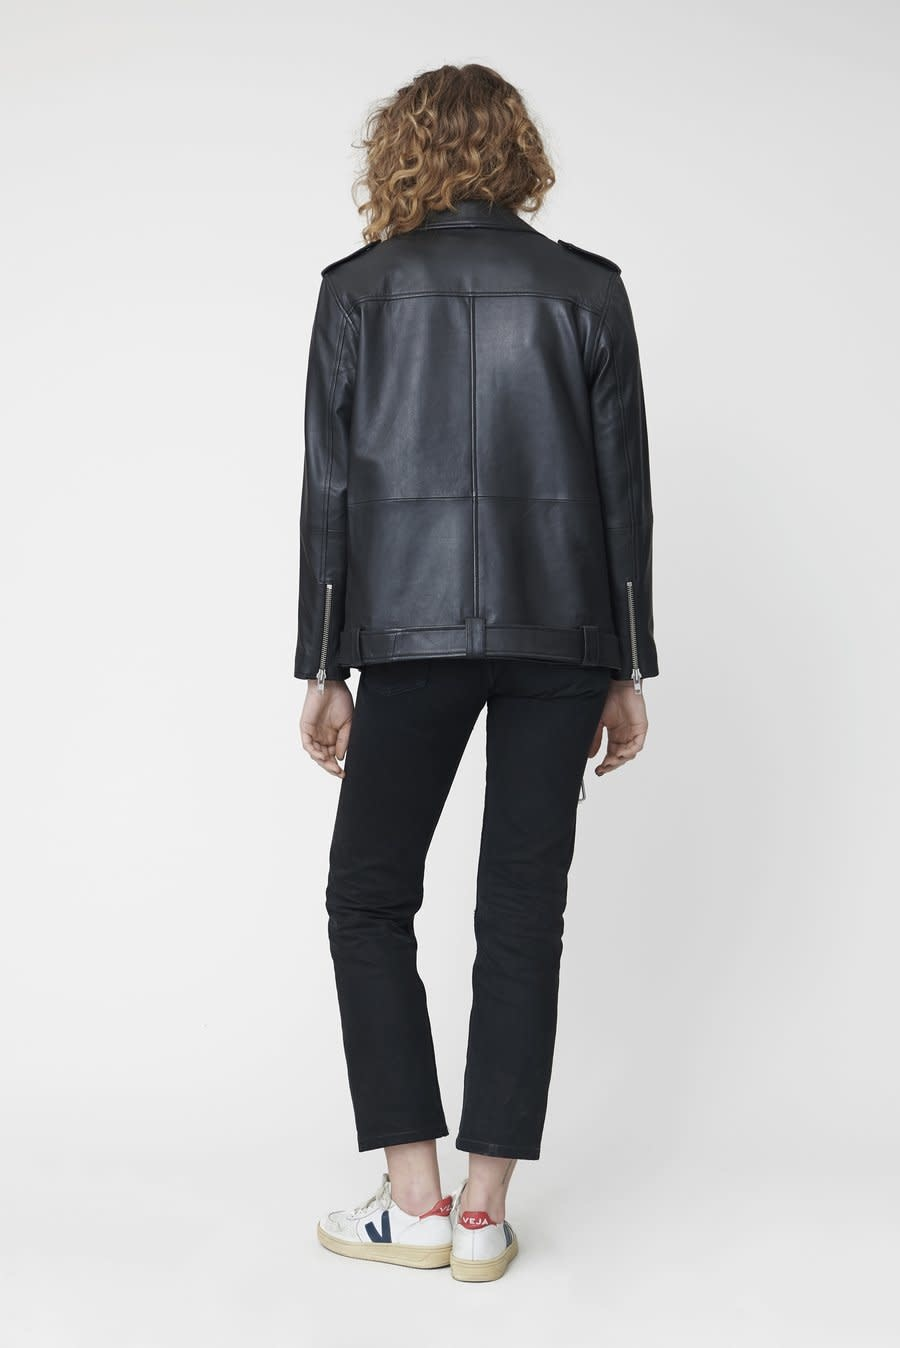 Noma Oversized Leather Biker Jacket Black-2